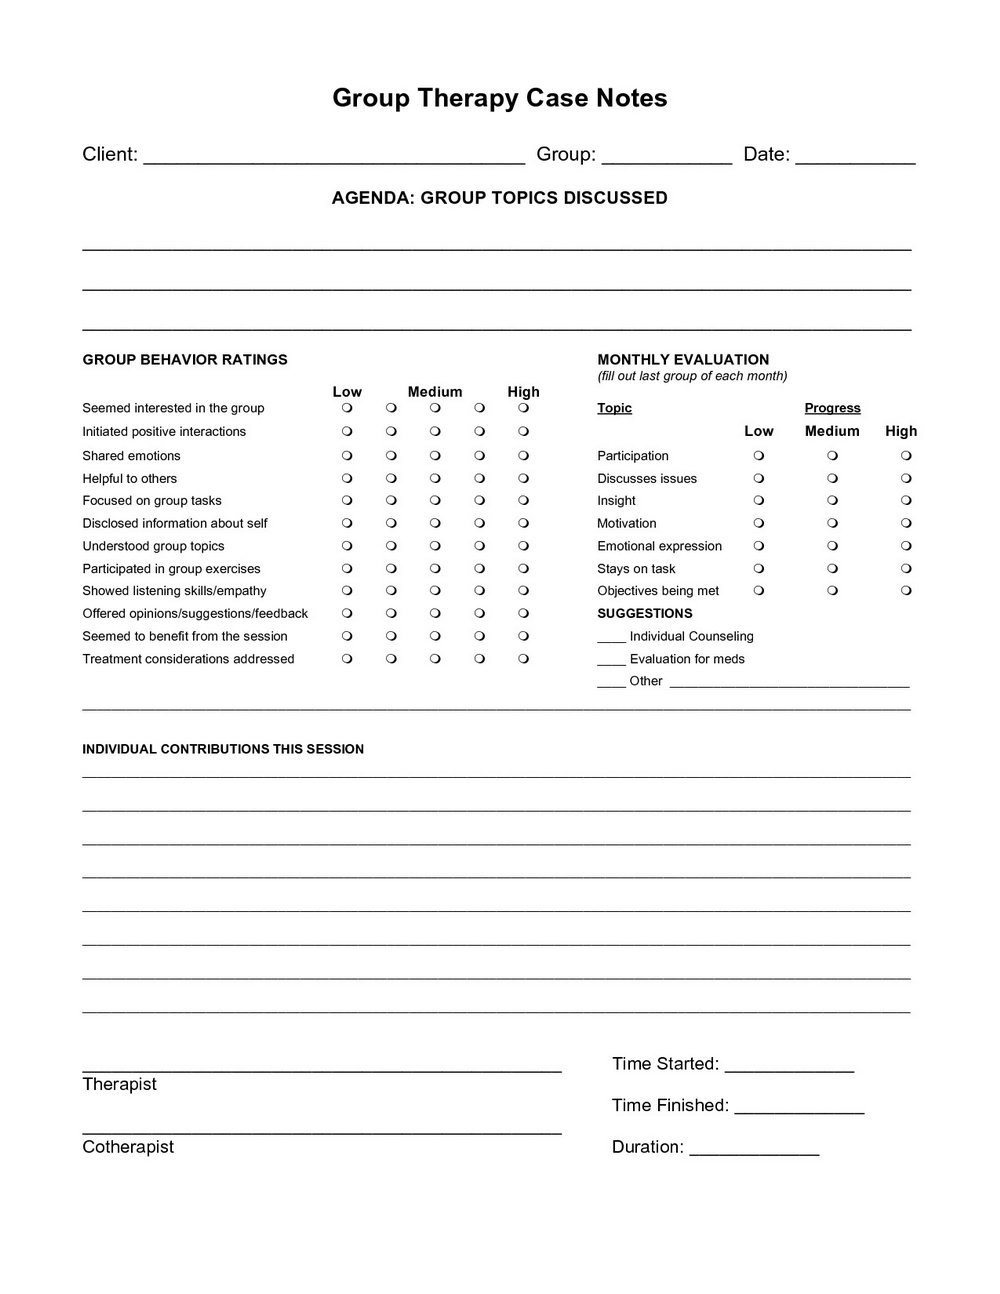 Group Therapy Progress Note Template